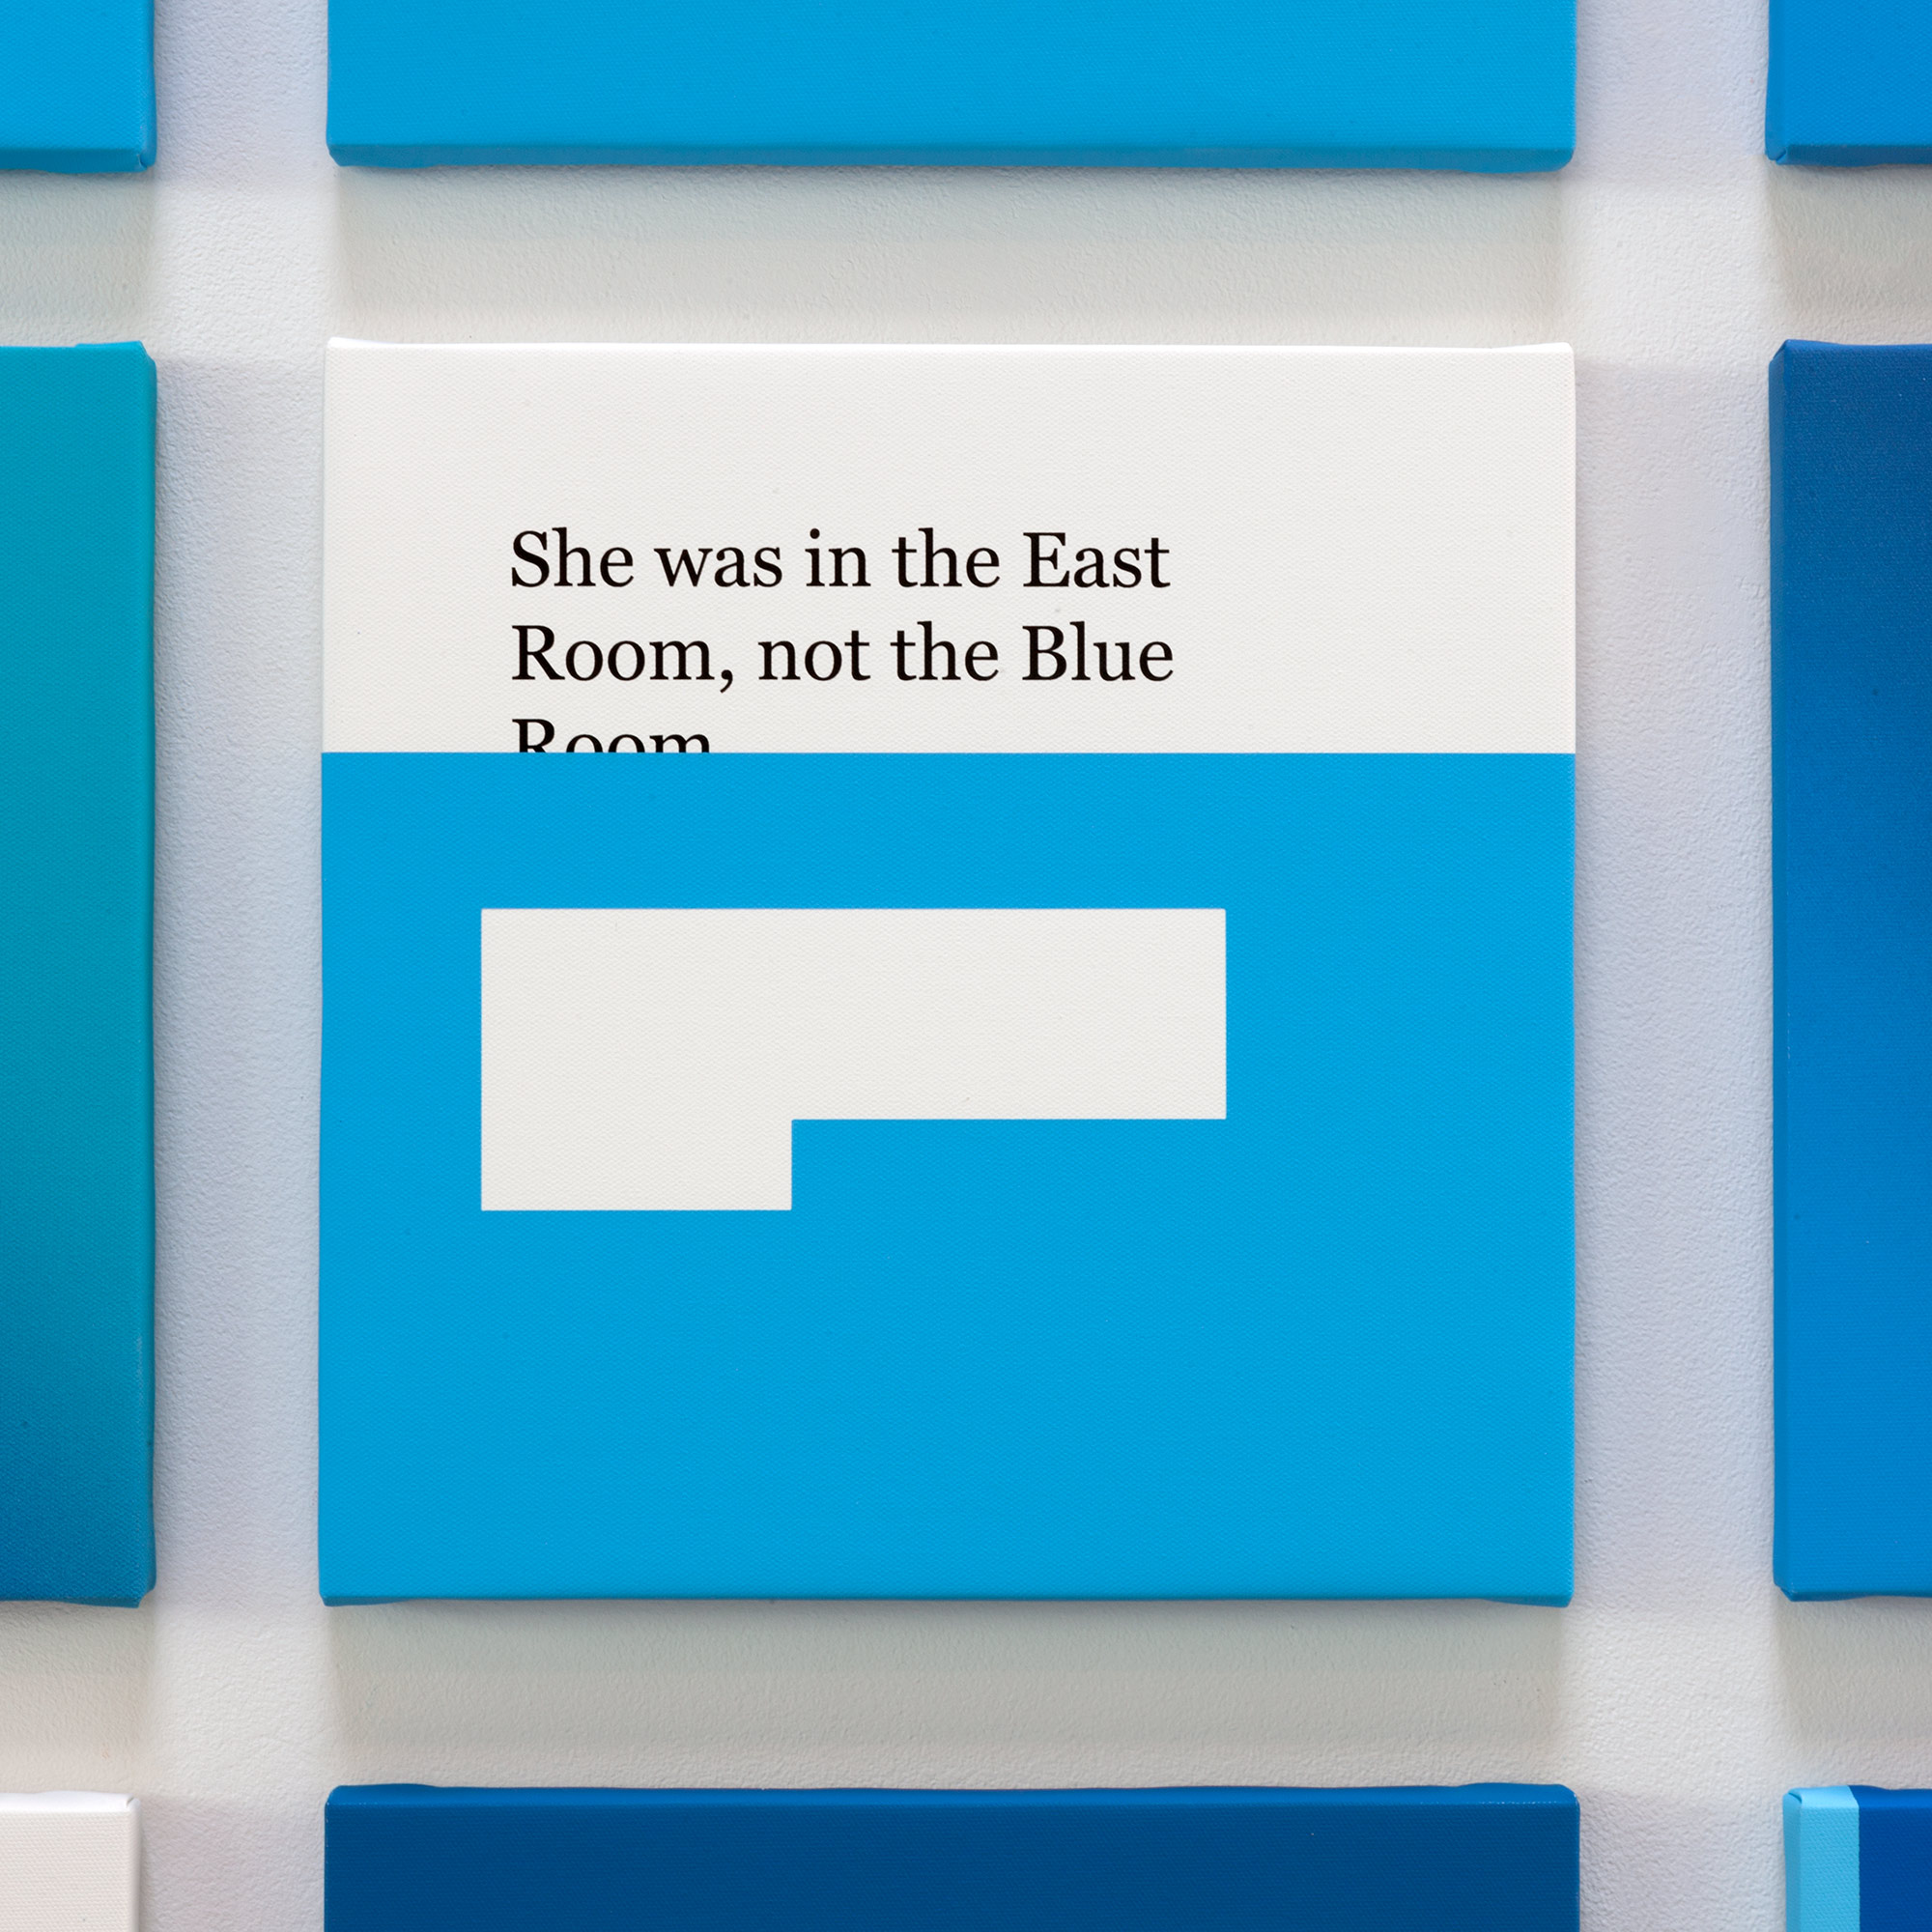 NOT THE BLUE ROOM